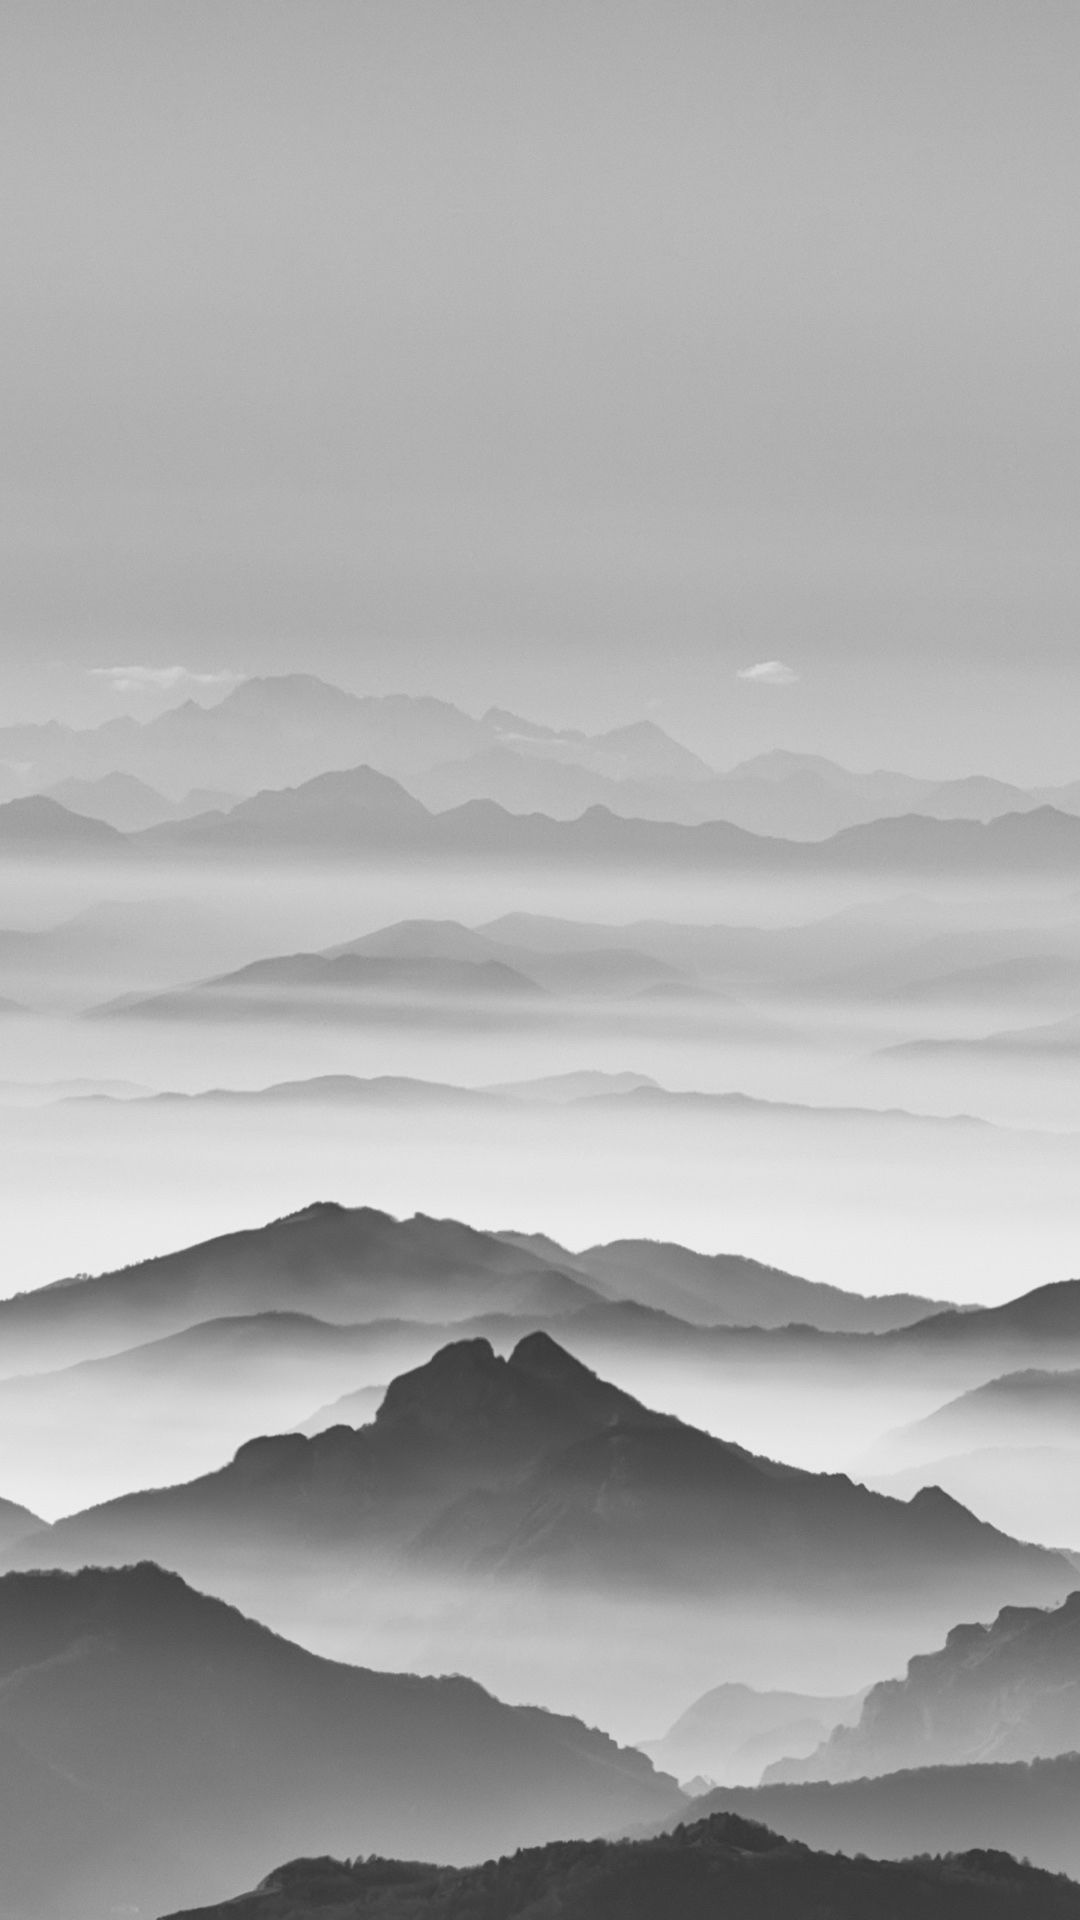 Abstract Grey Background Landscape Wallpaper Grey Wallpaper Iphone Black And White Landscape